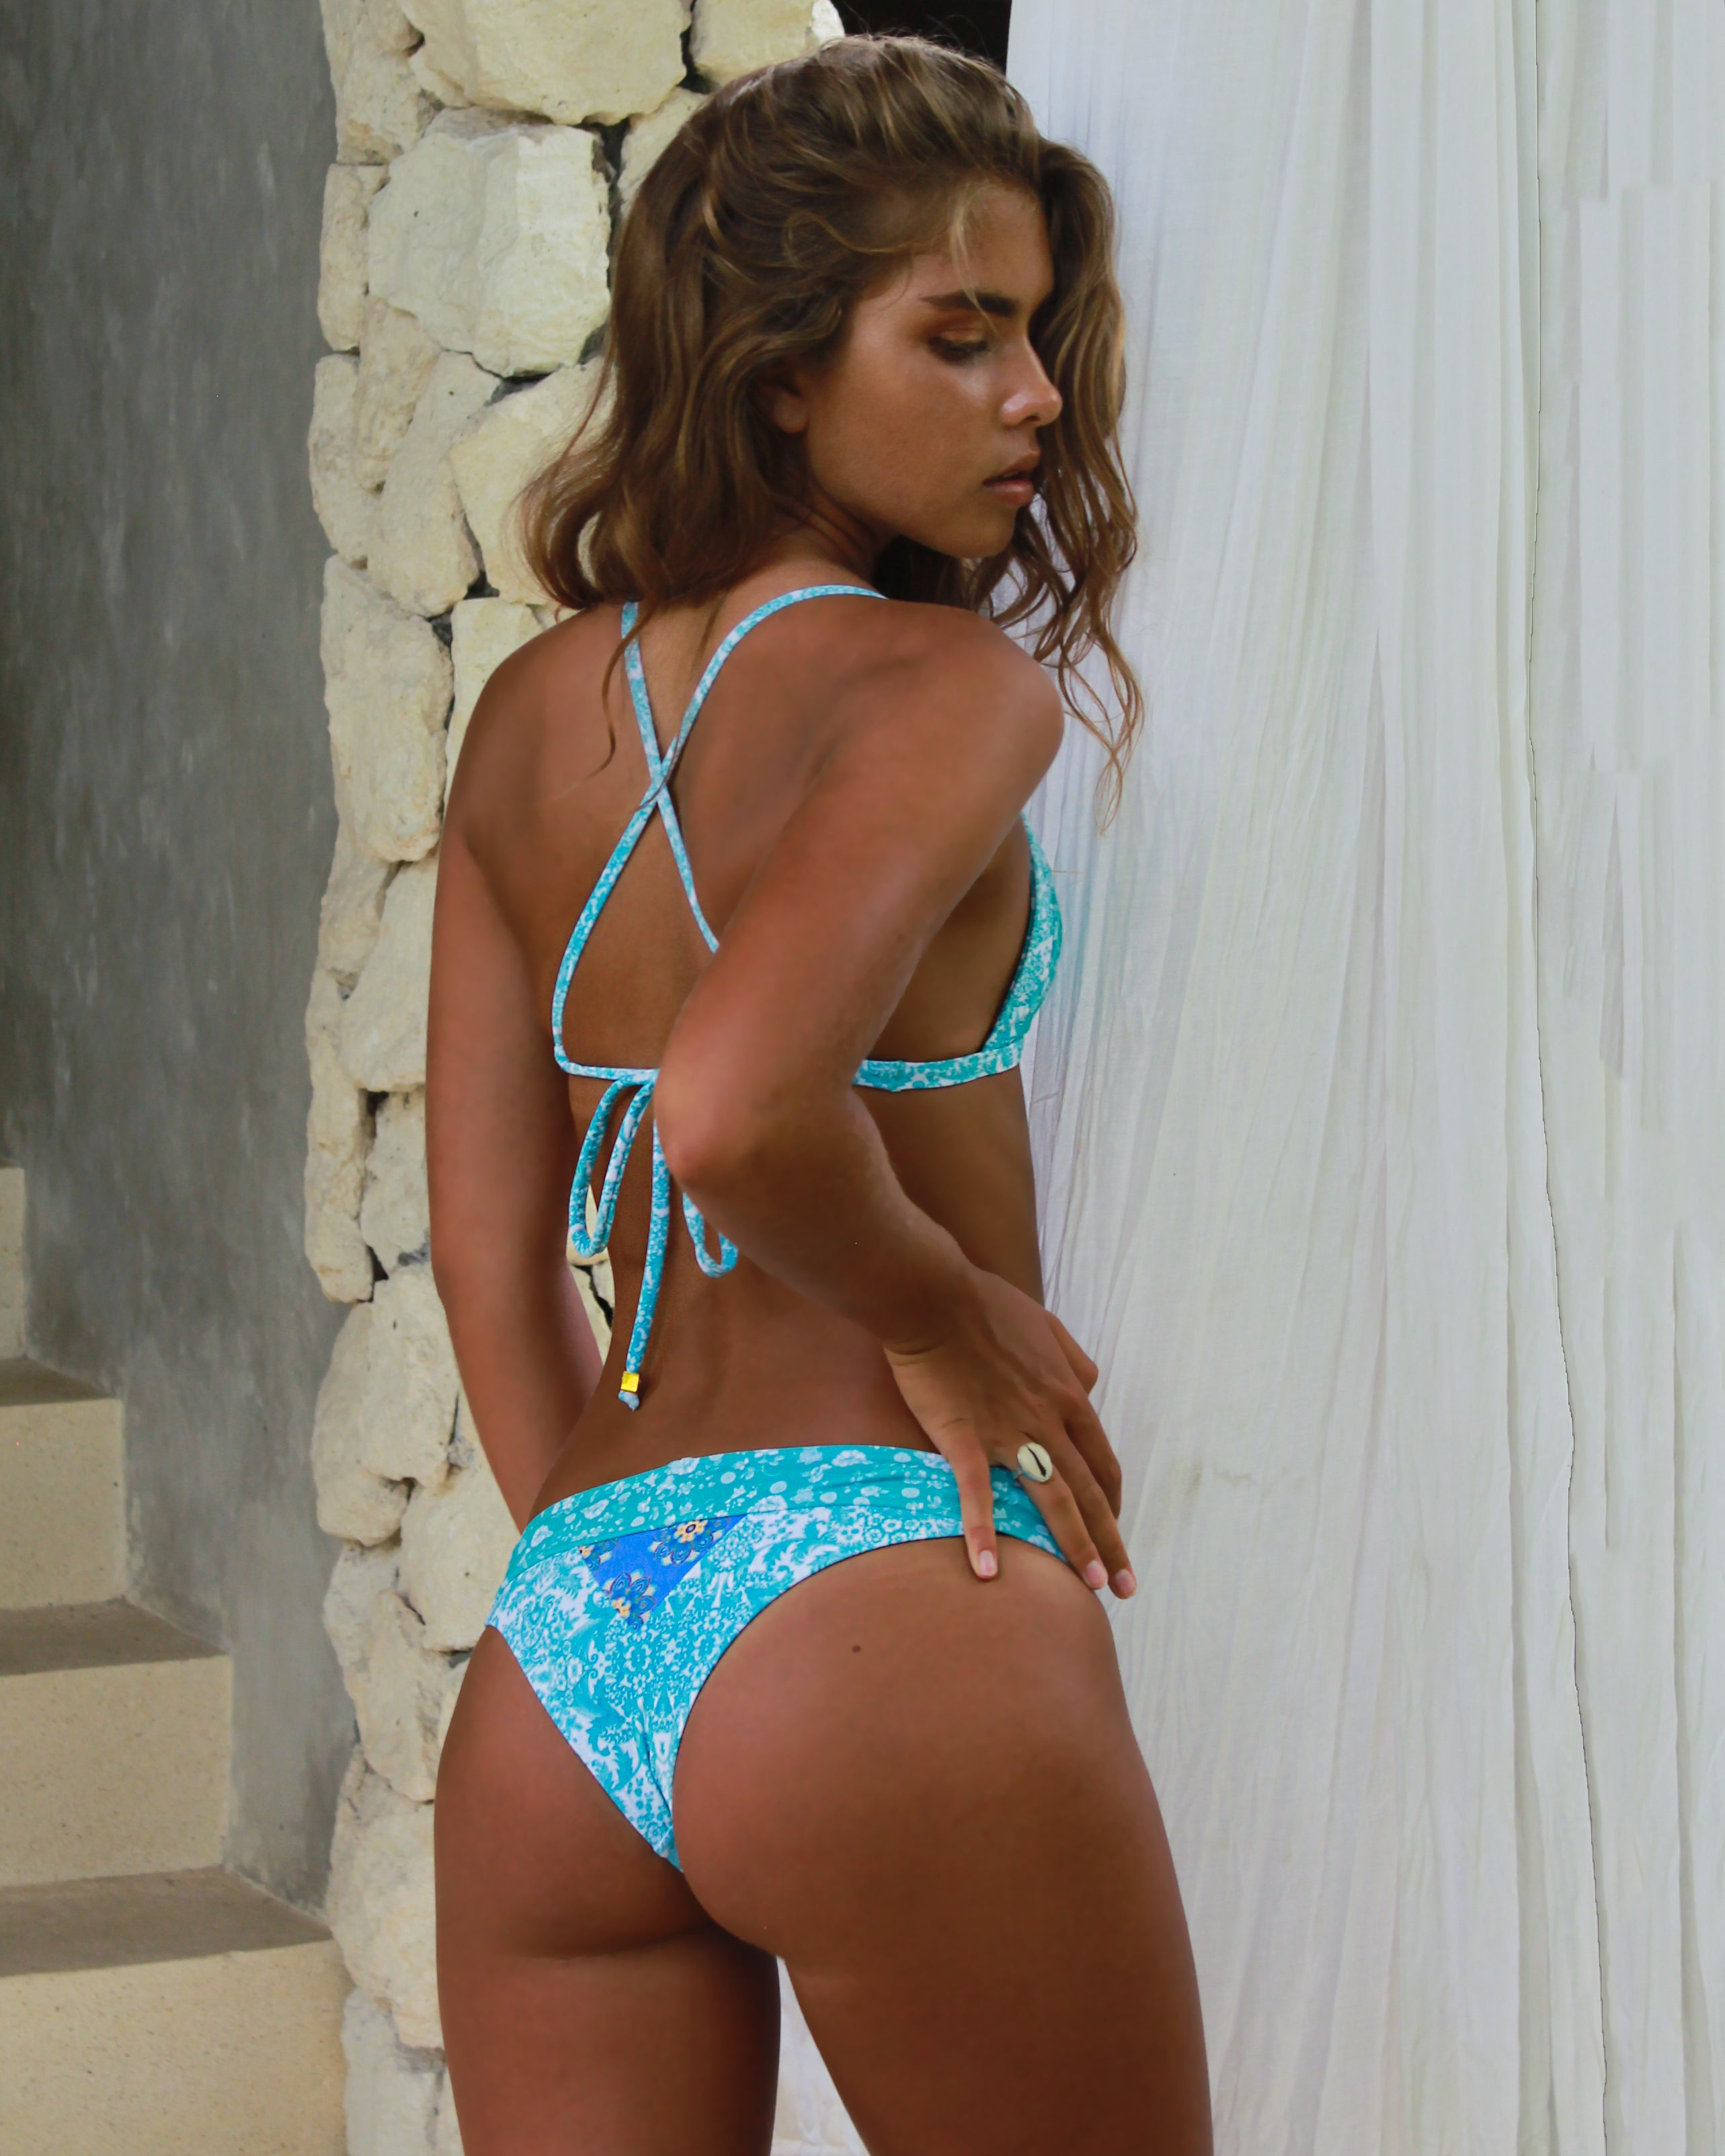 Nexpa Bottoms - Antique/ Springfields/ Sahara - cheeky cut brazilian surf bikinis Cenote Swimwear that stays on in the surf